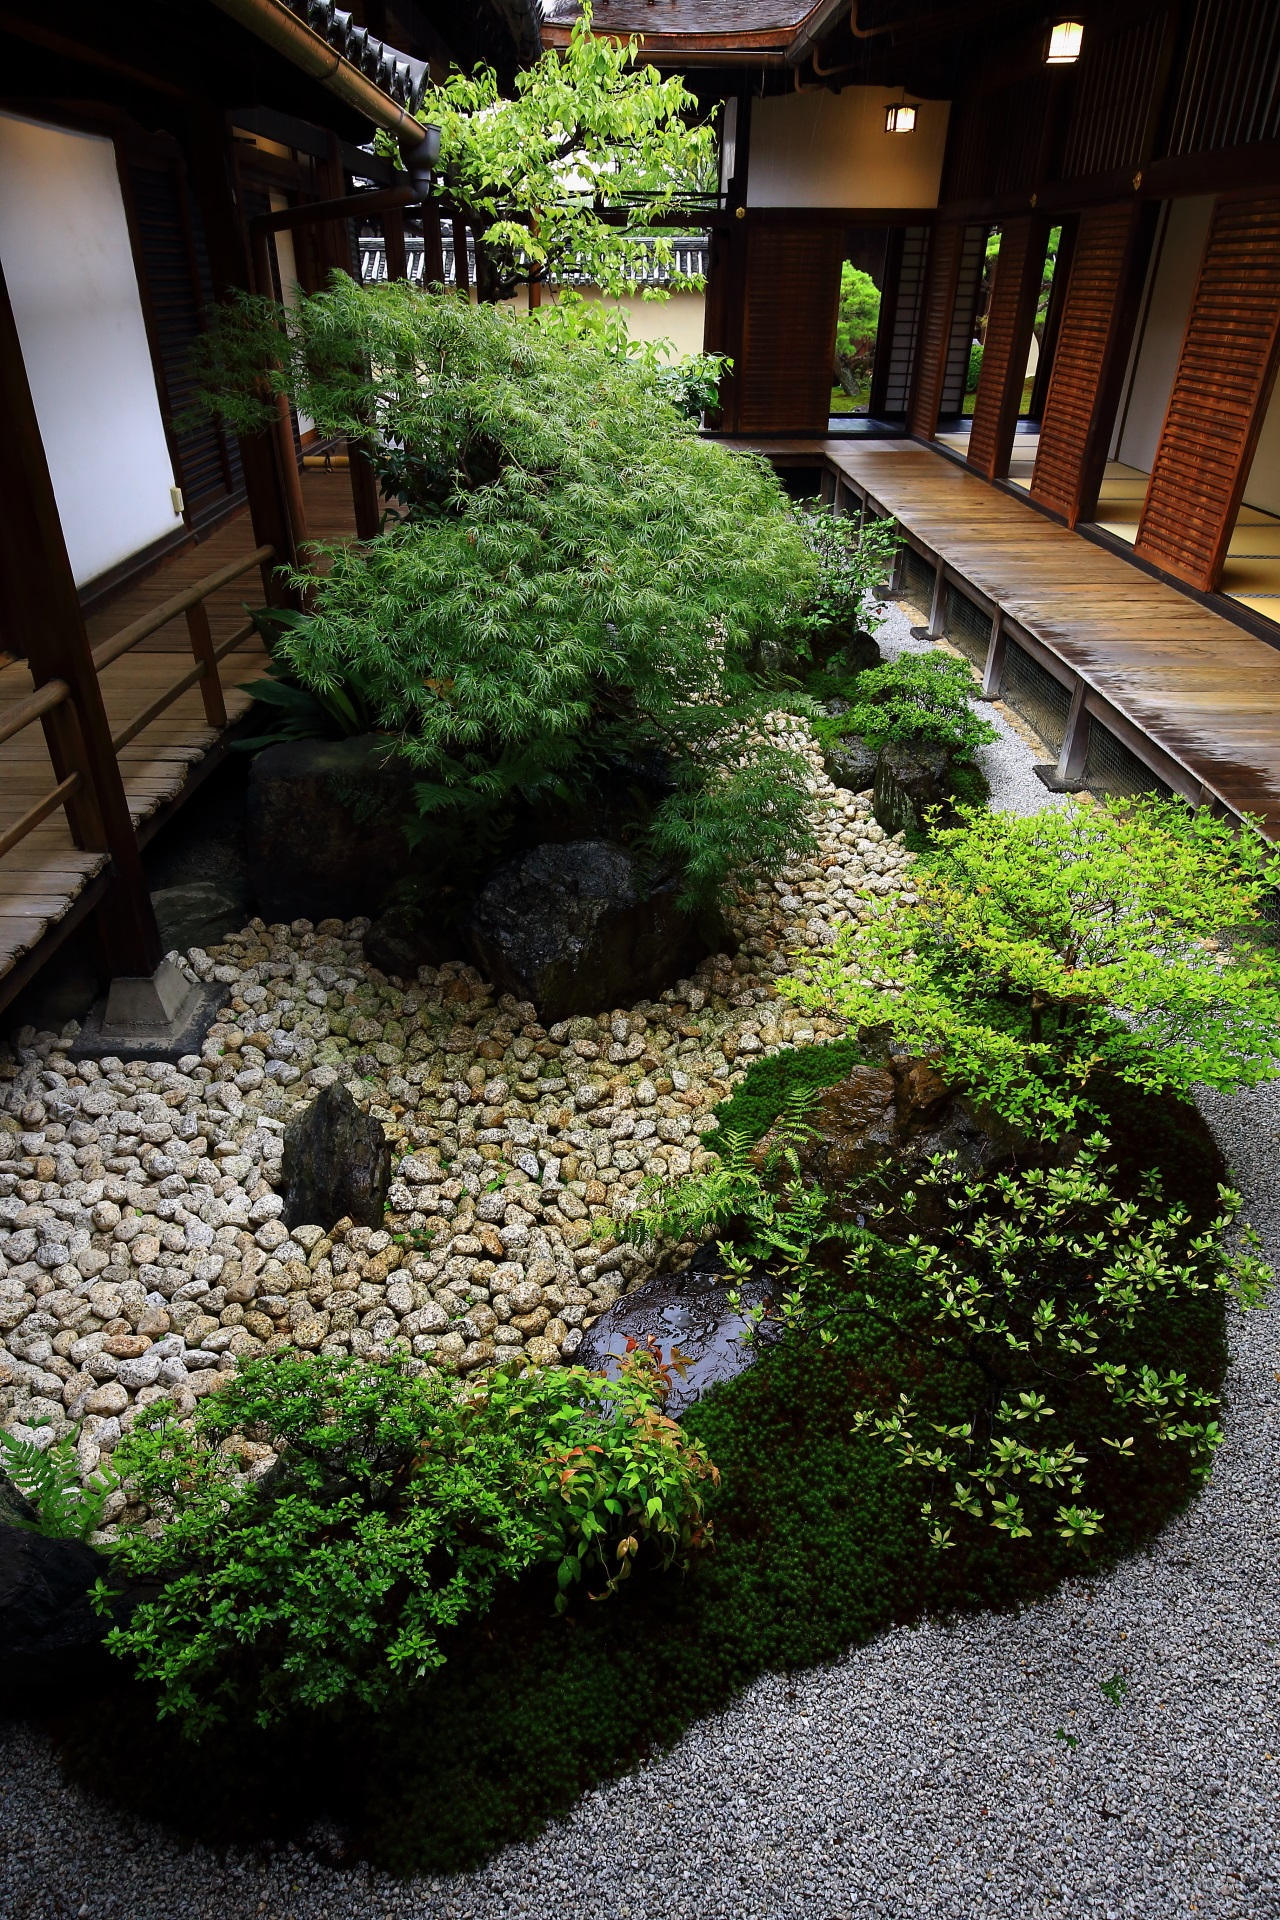 An idyllic garden at Kanchi-in House in To-ji Temple in Kyoto,Japan